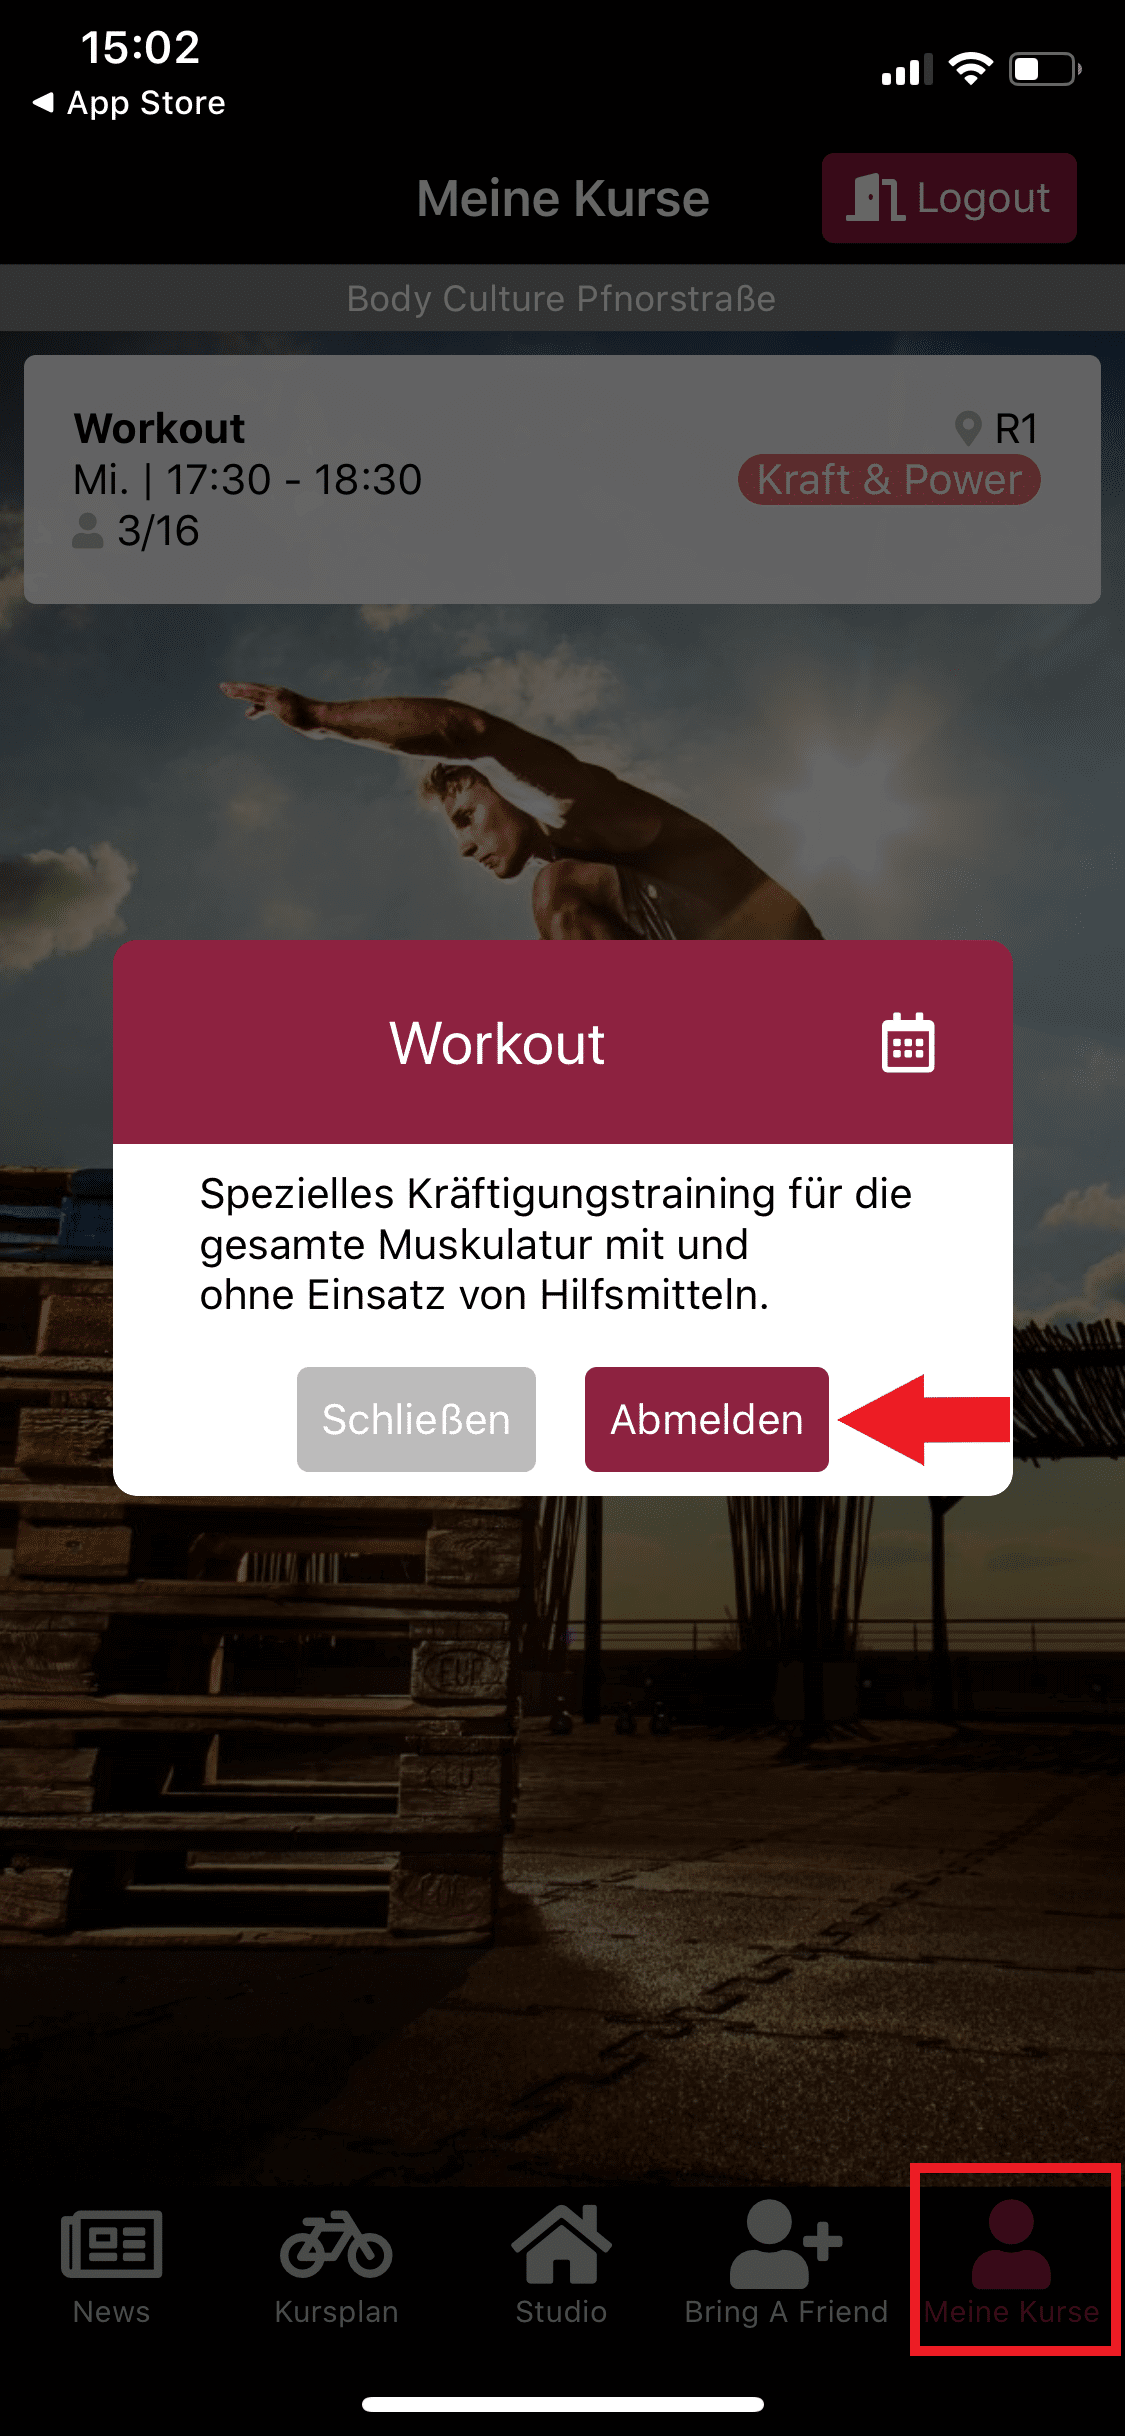 Vom Workout Kurs abmelden